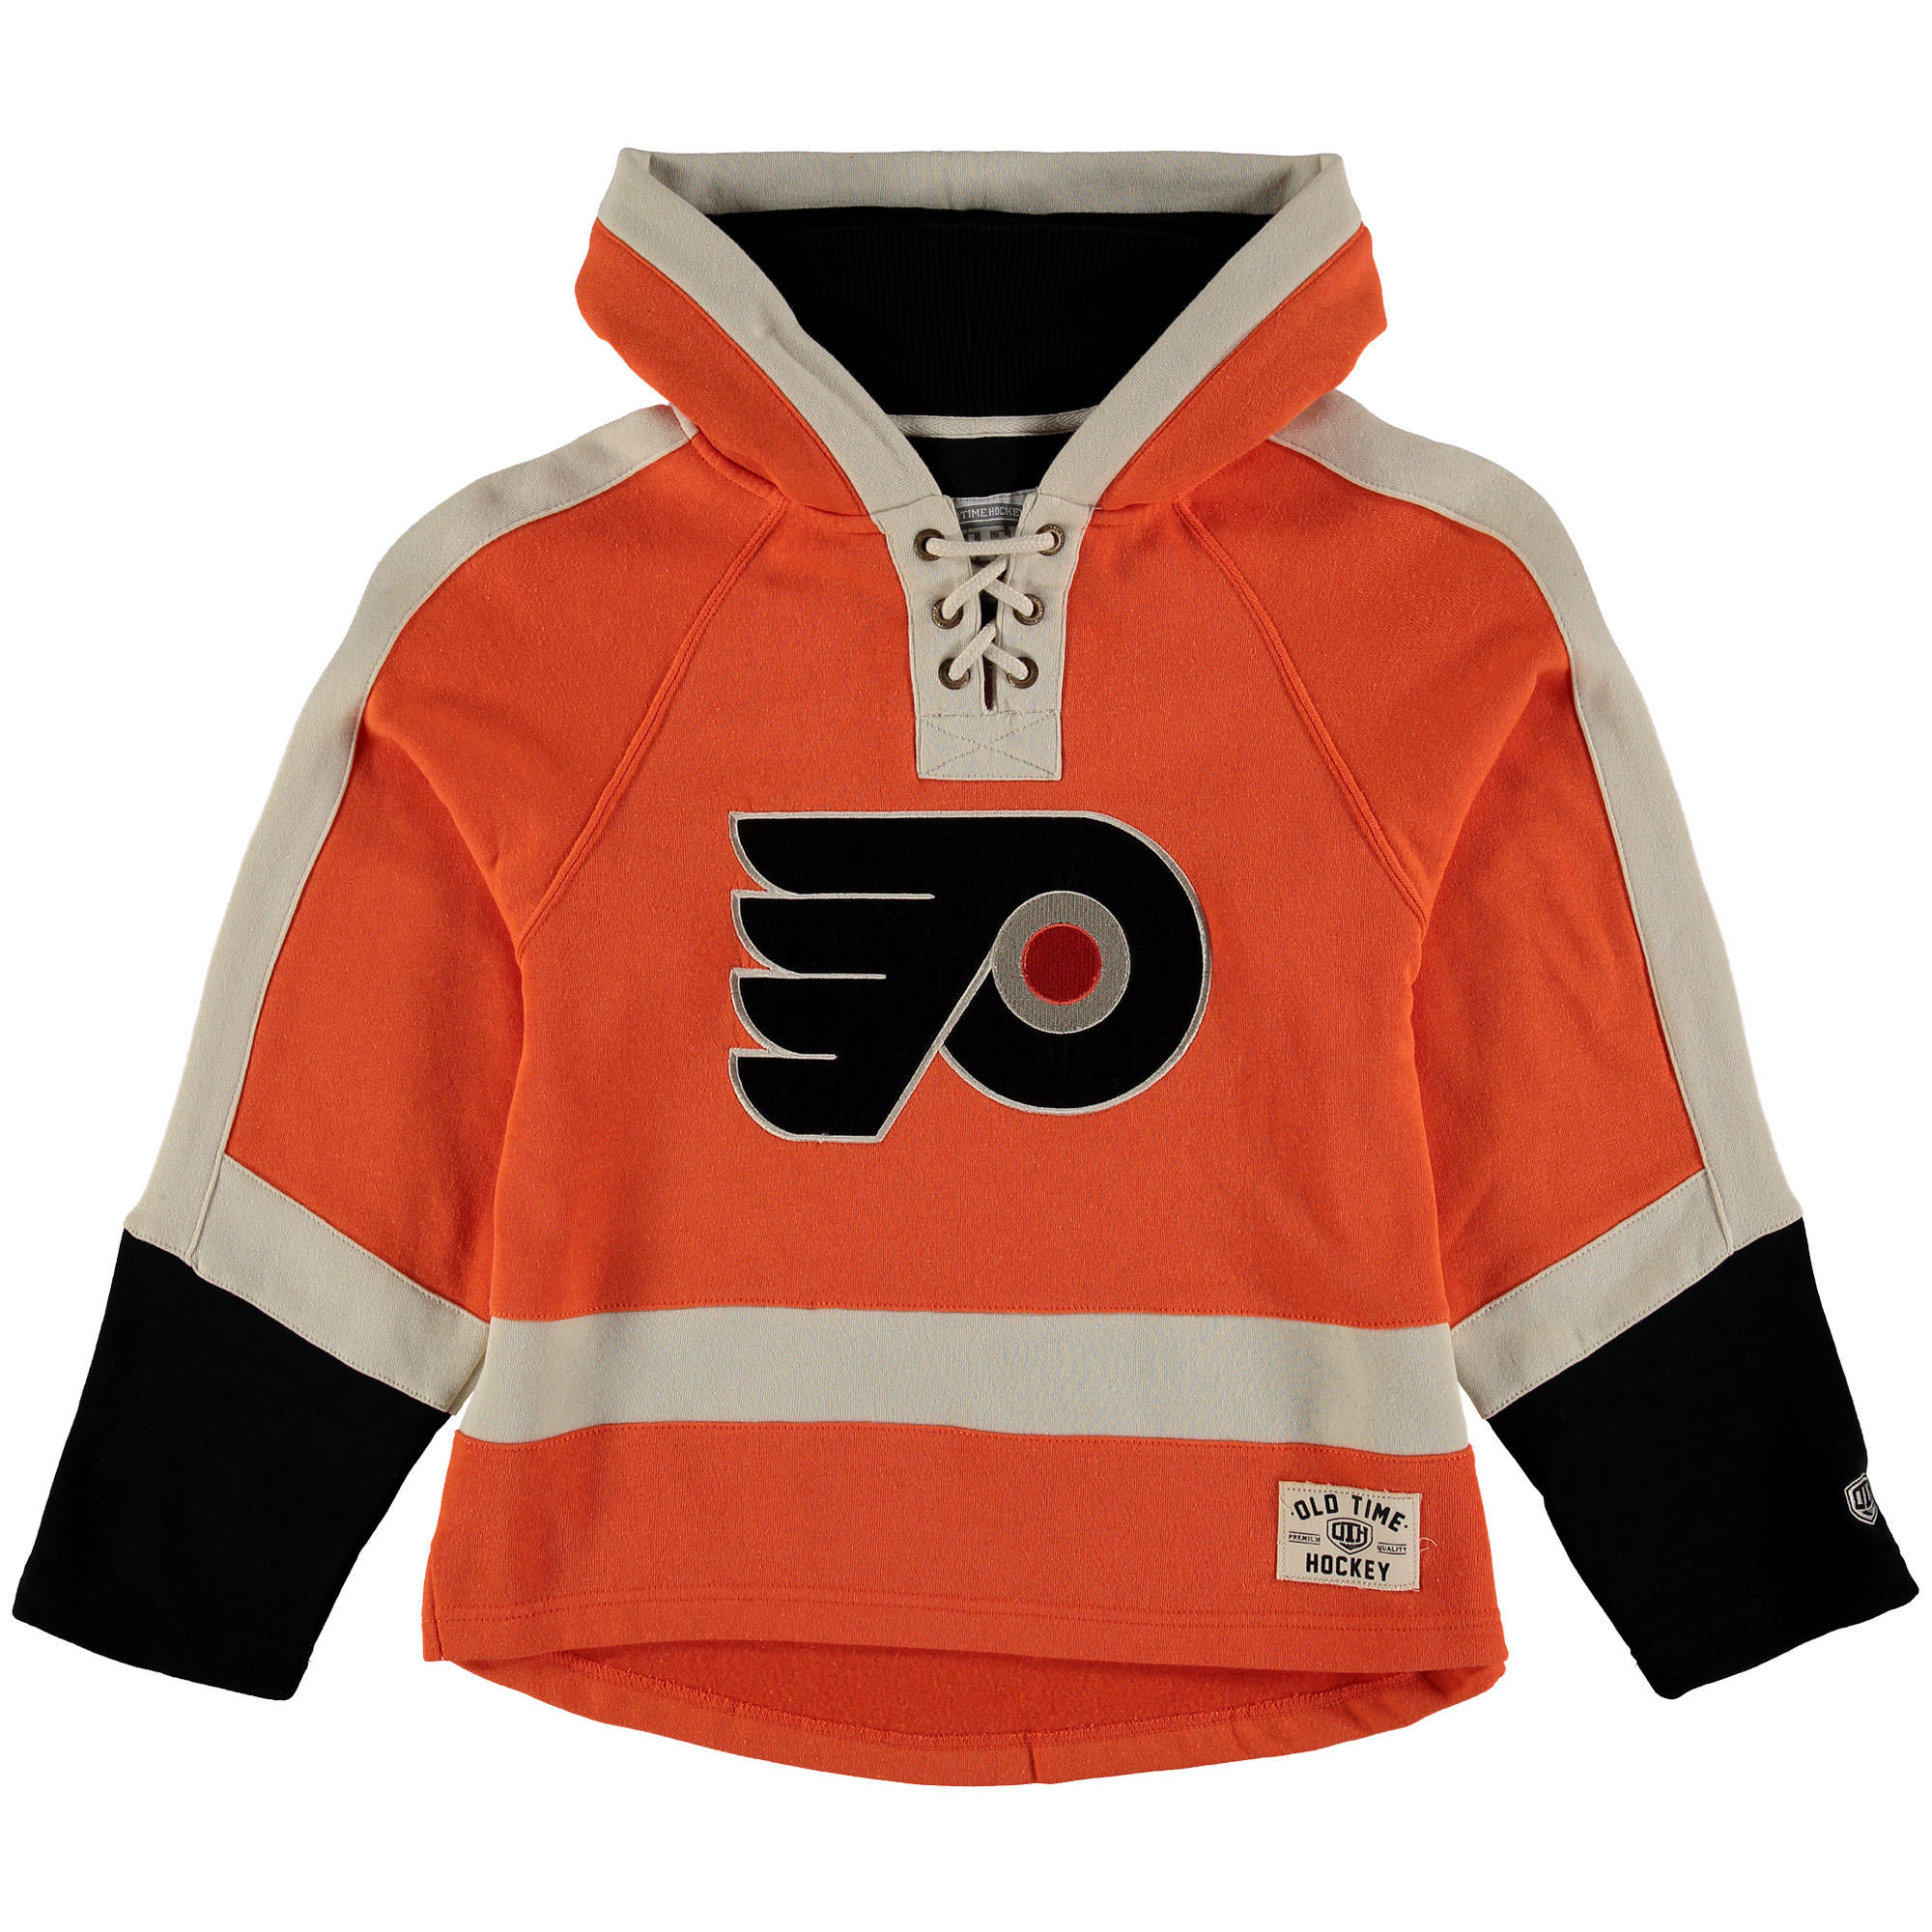 Philadelphia Flyers Old Time Hockey Youth Current Lacer Heavyweight Hoodie Orange by Old Time Hockey